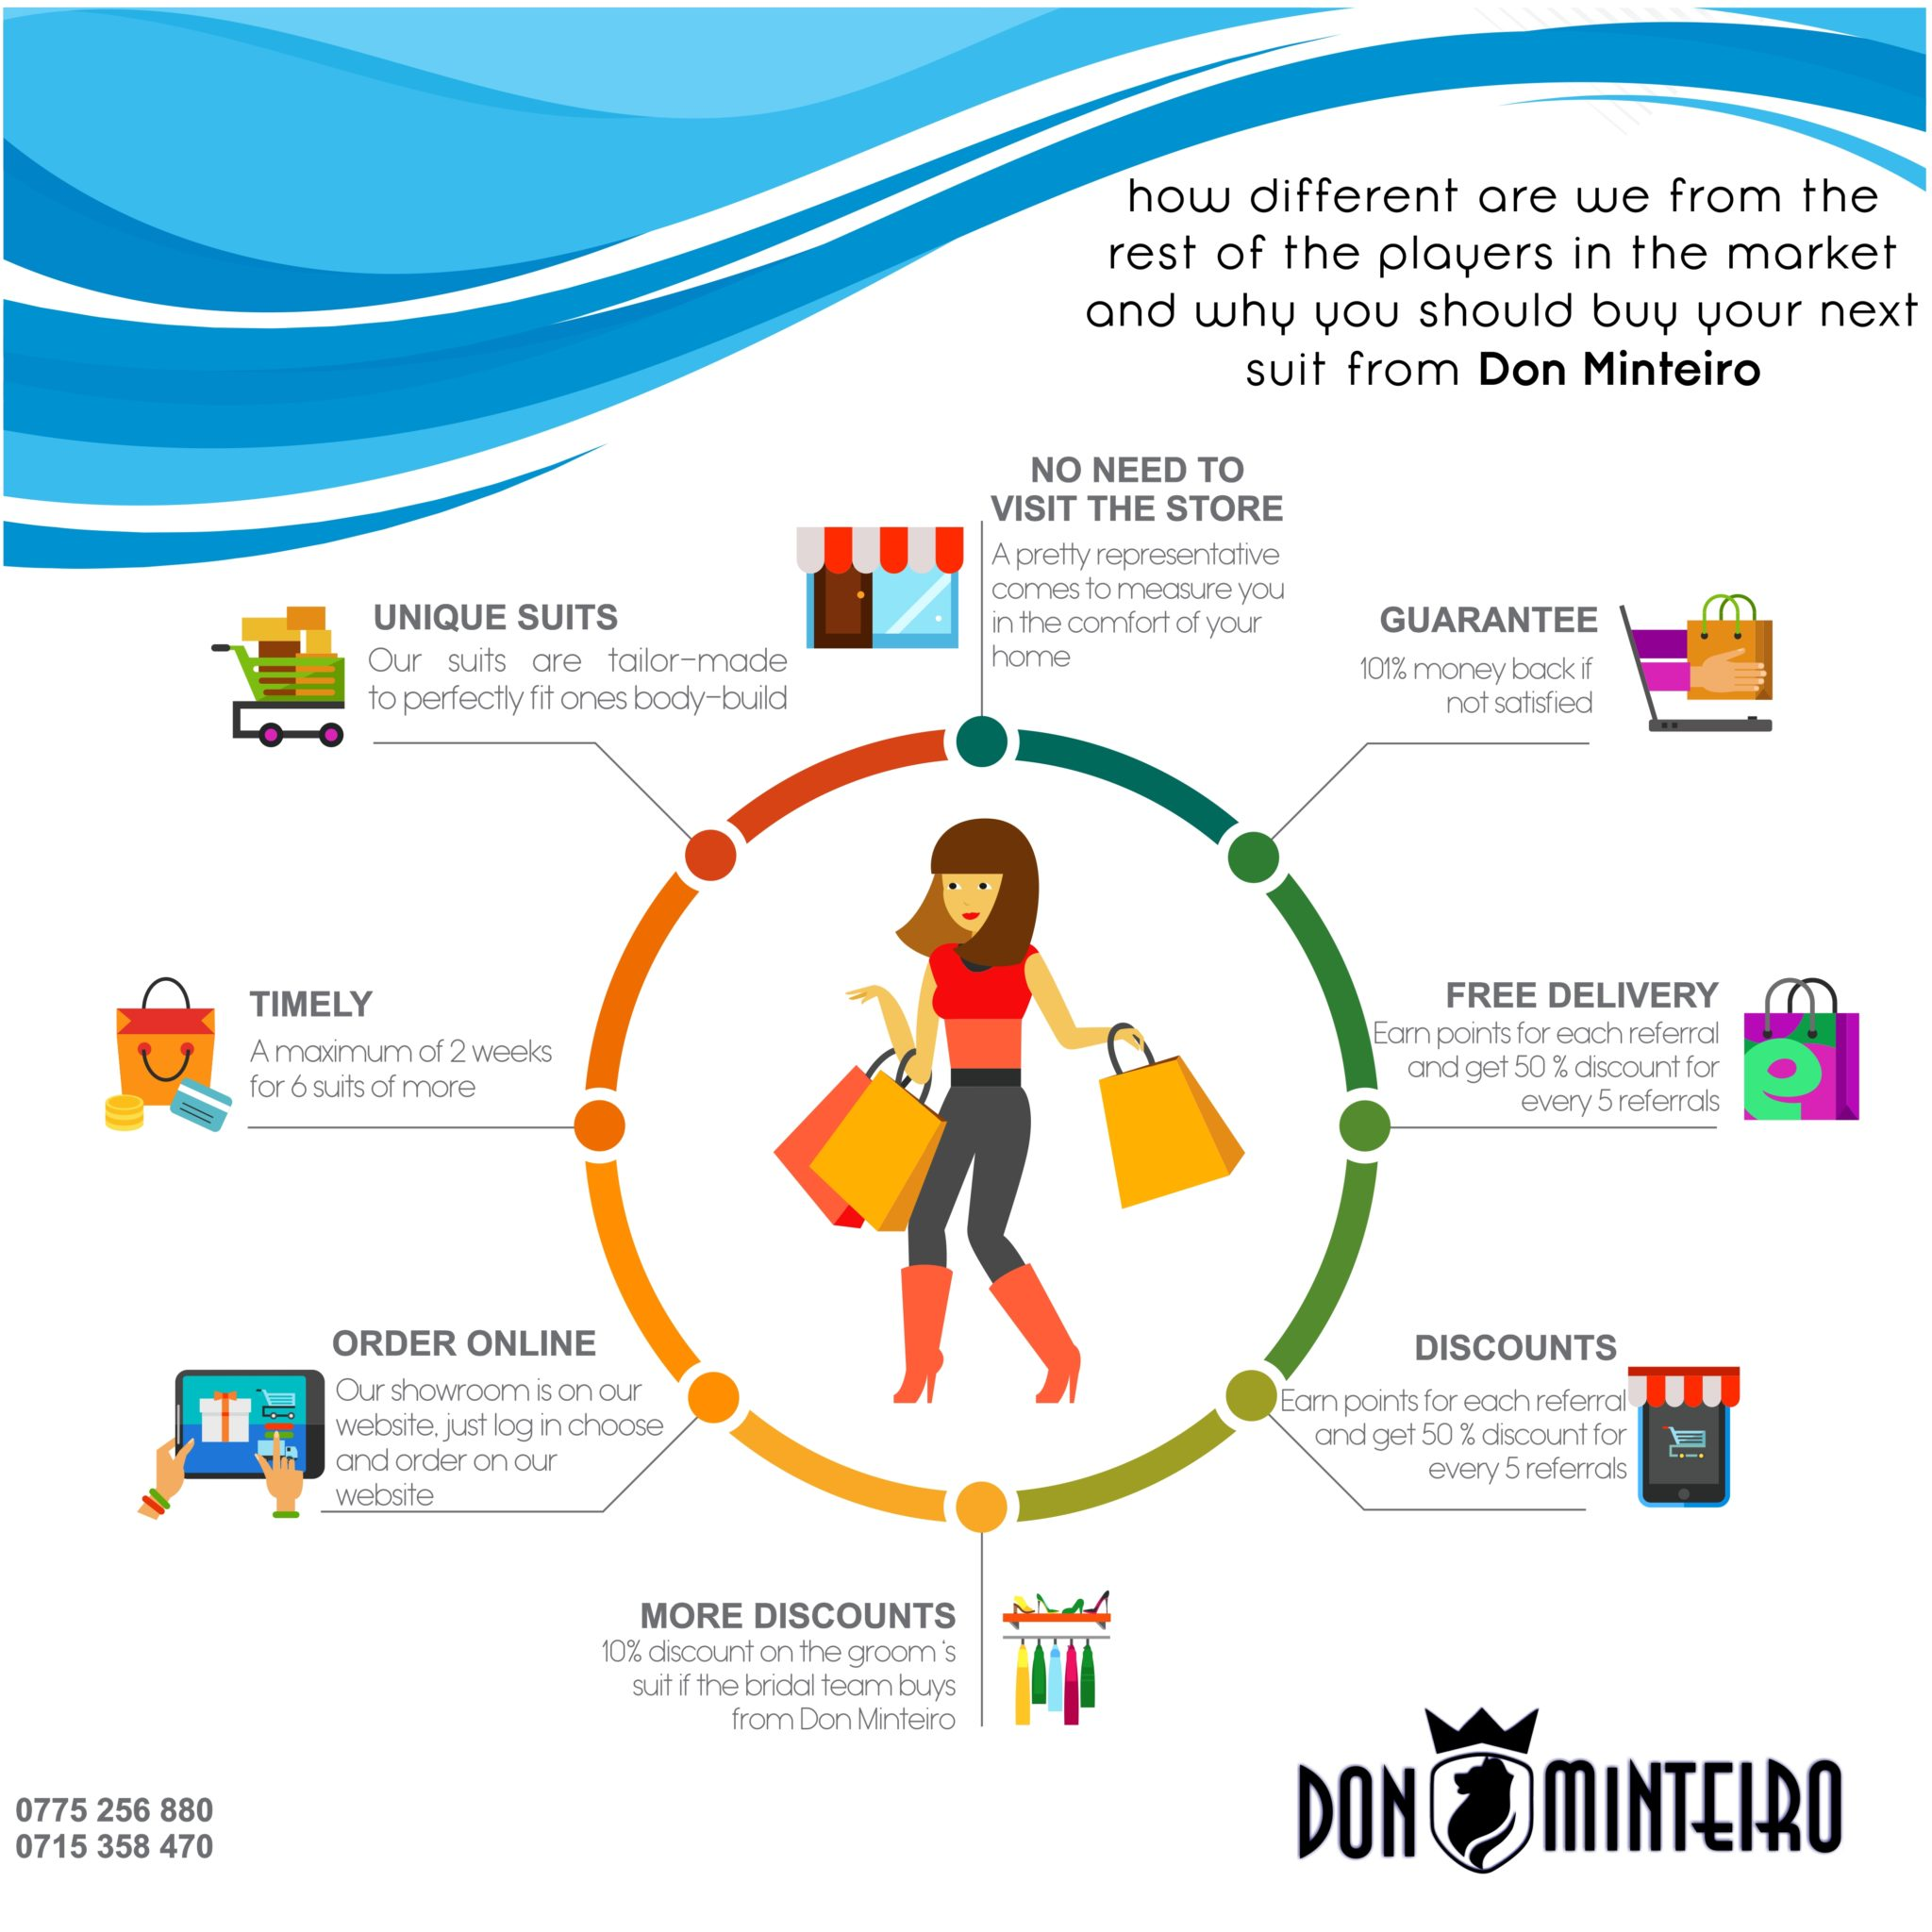 Reasons why you should buy from Don Minteiro